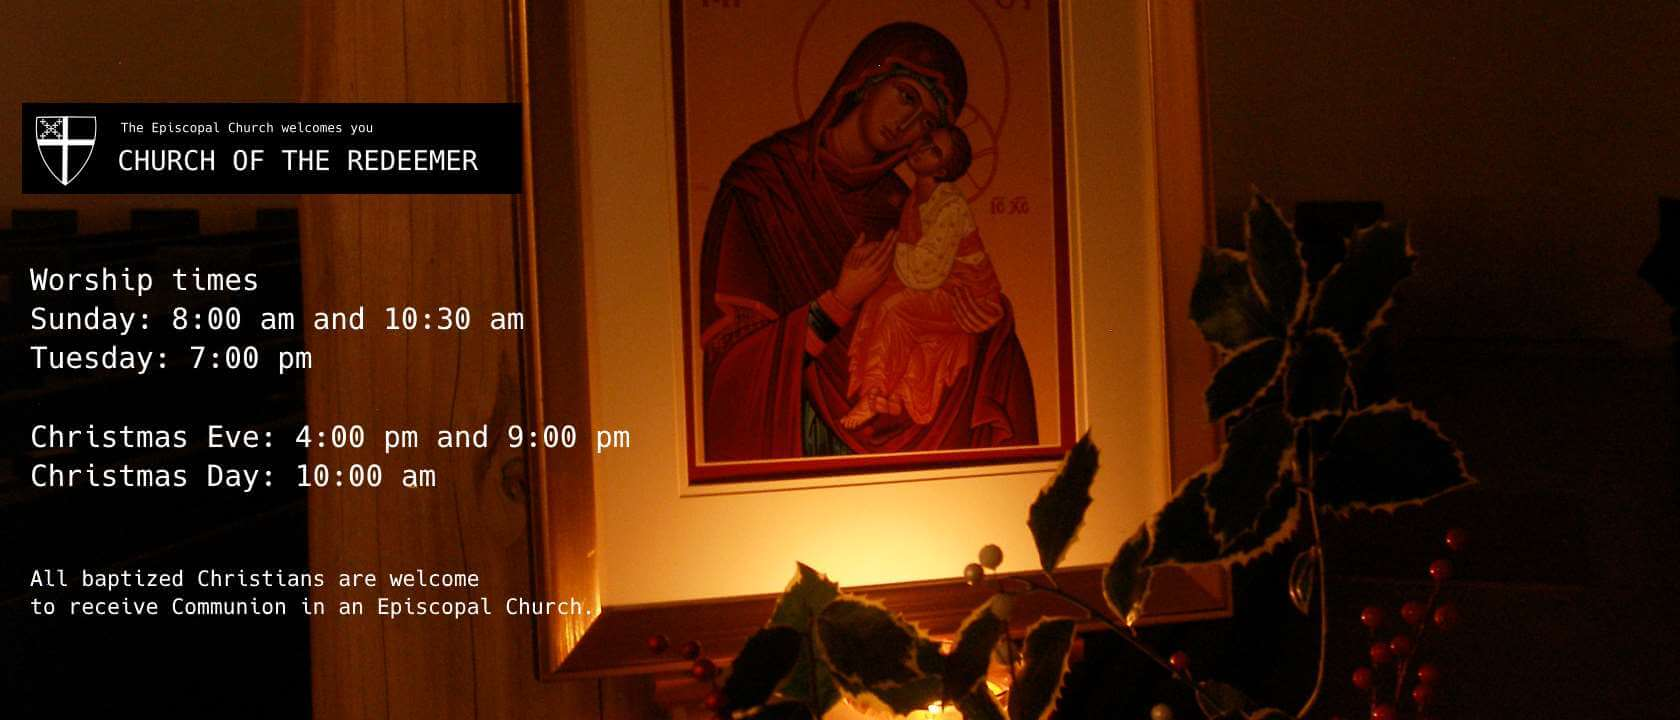 Sunday worship times: 8:00 am and 10:30 am; Tuesday worship time: 7:00 pm